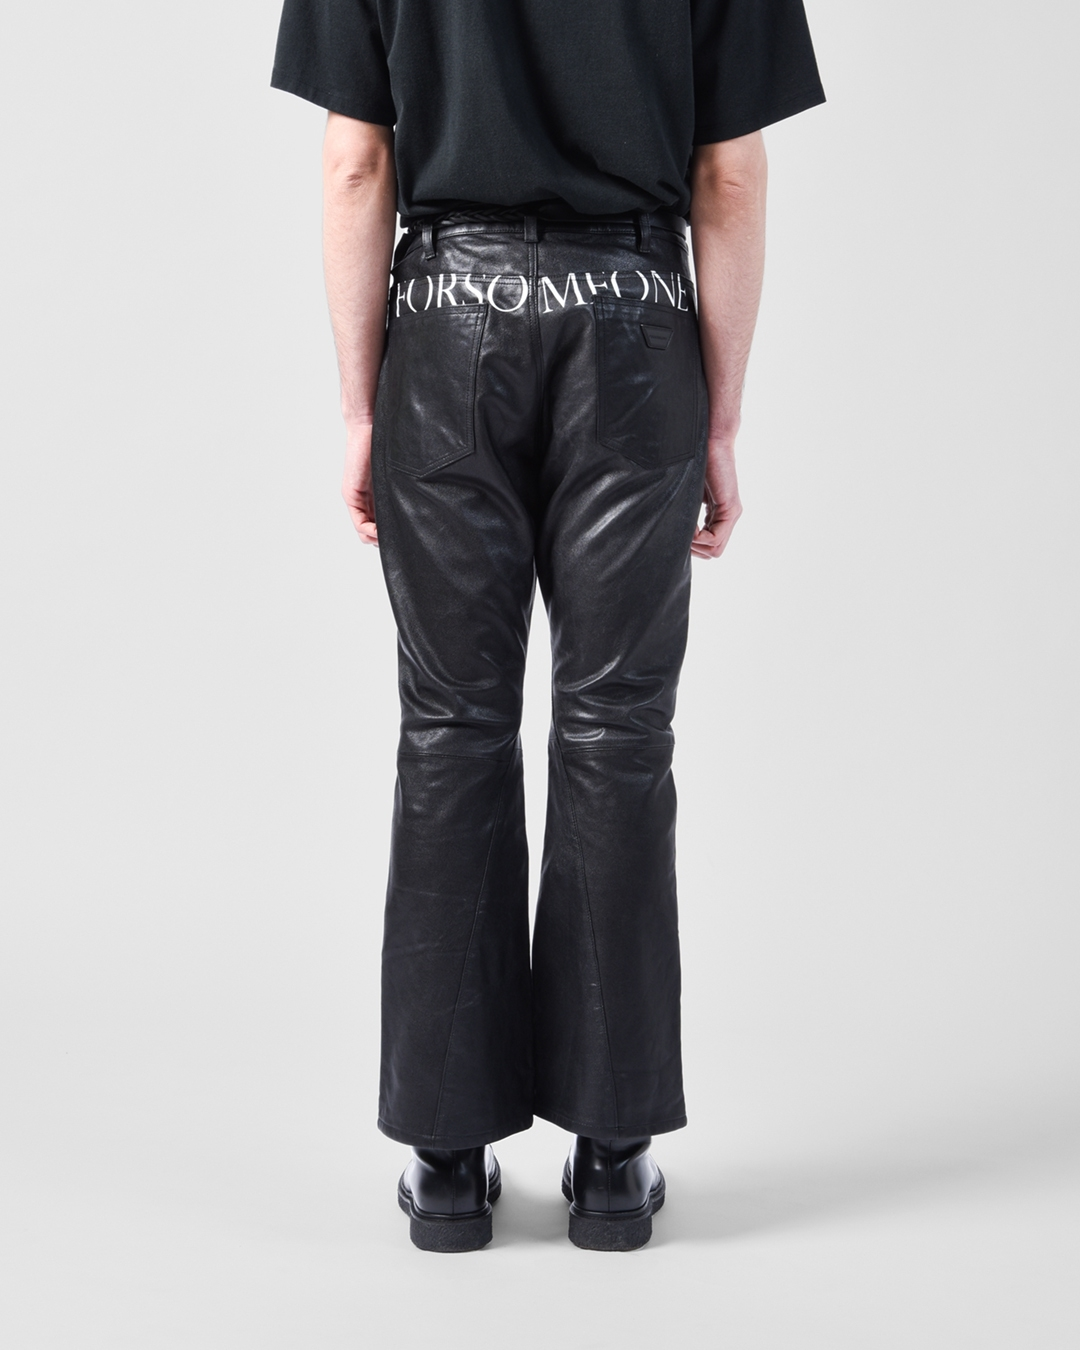 #146 LEATHER TROUSERS 詳細画像 Black 3